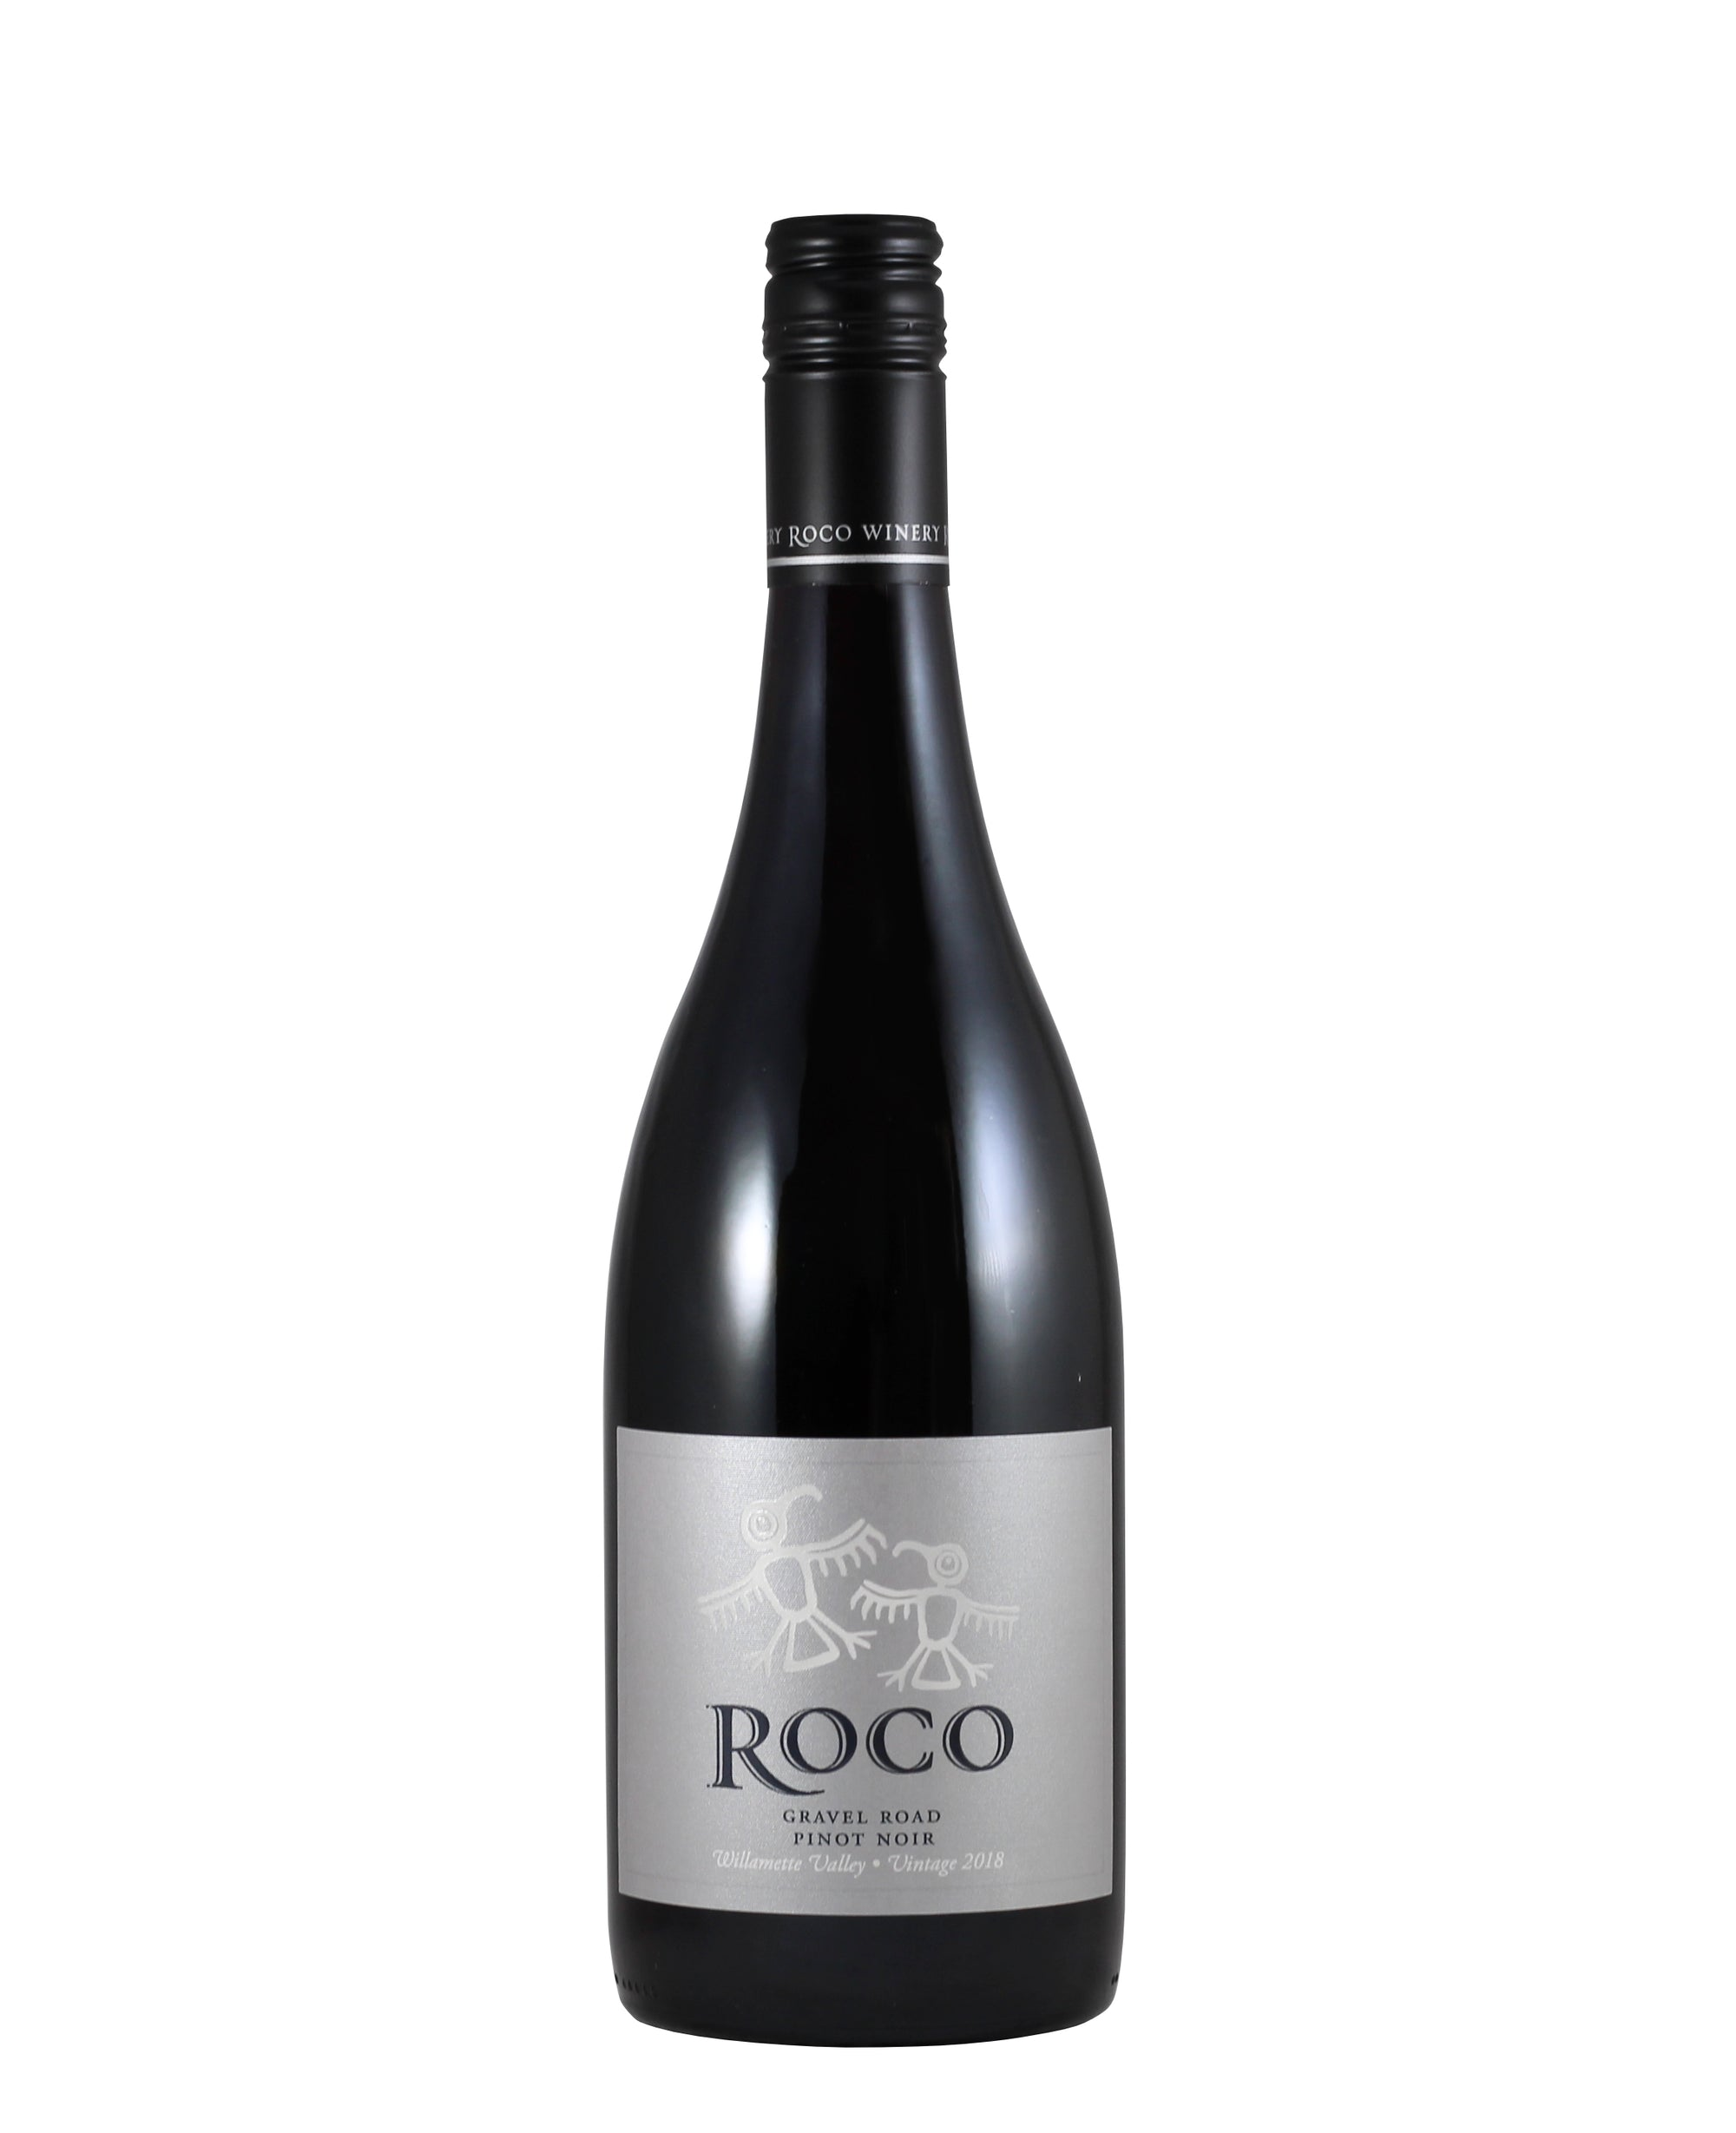 *2R* 2018 Roco Gravel Road Pinot Noir (Willamette Valley, OR)